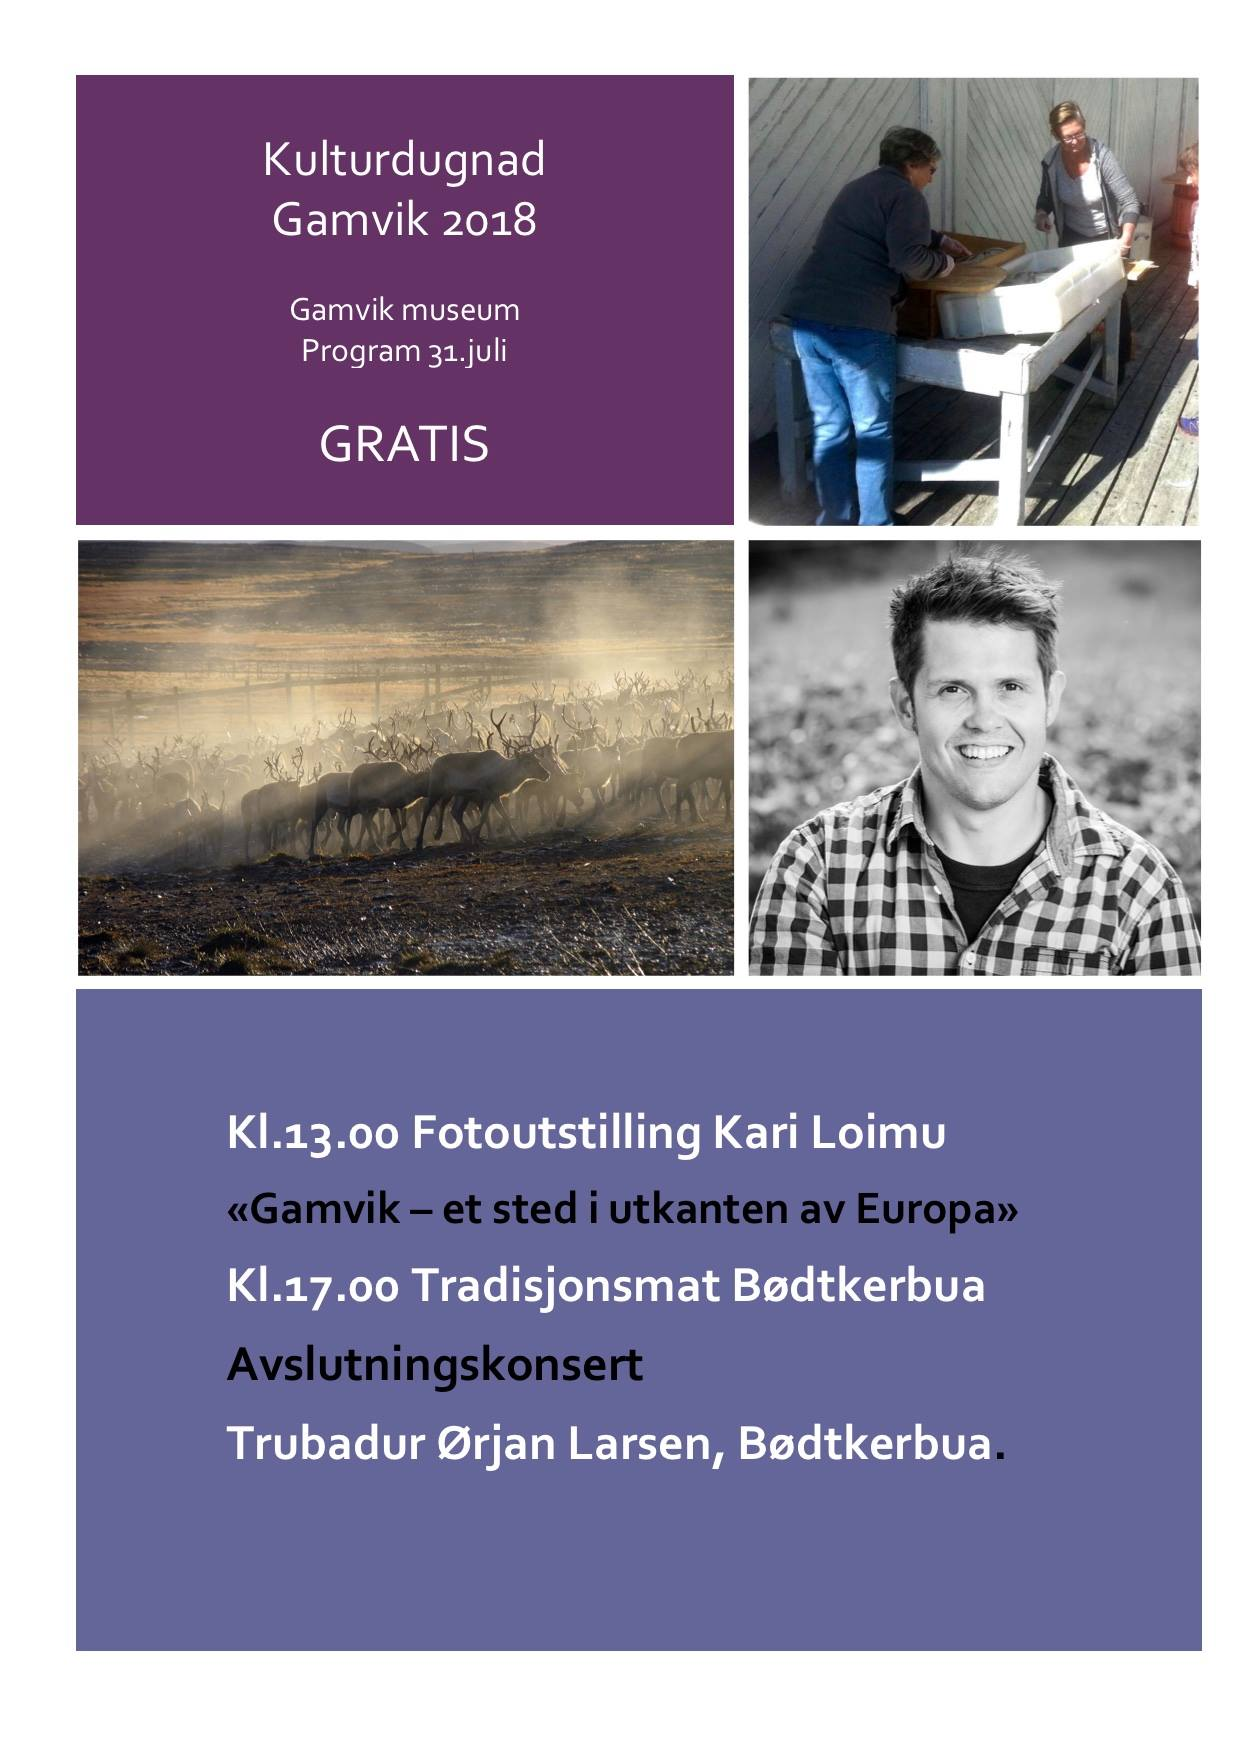 Program Kulturdugnad Gamvik 2018 7